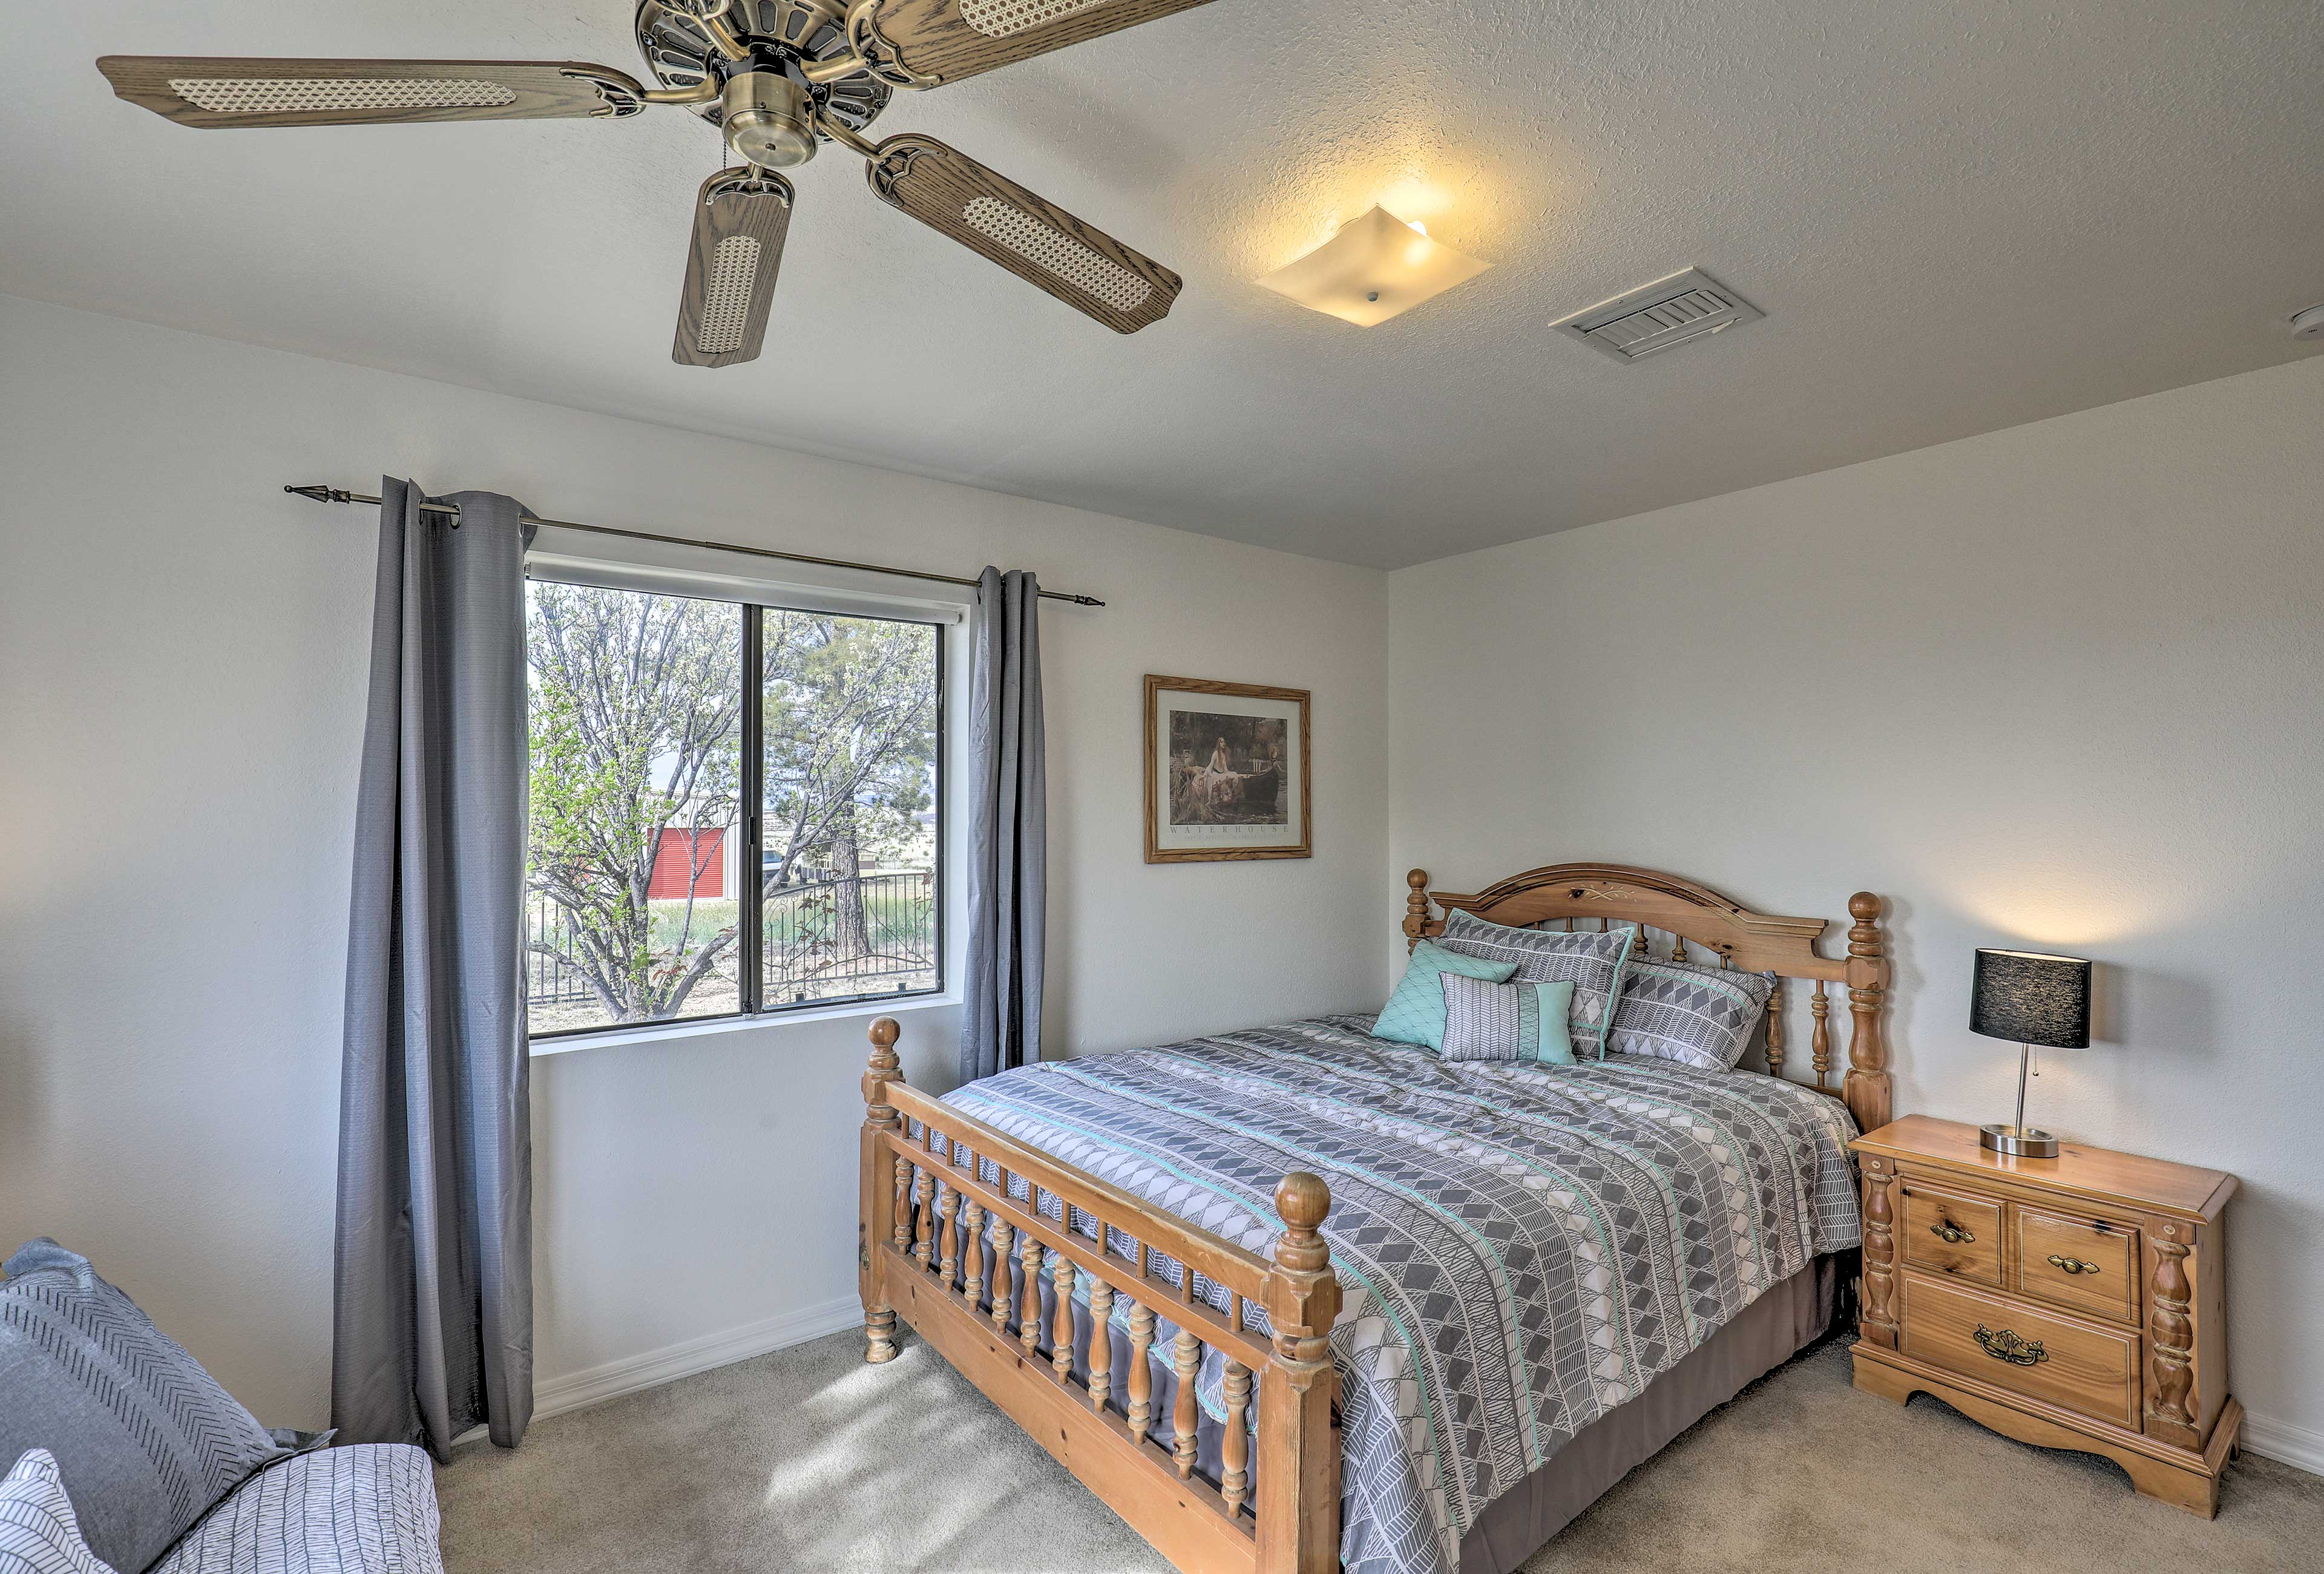 The house offers 3 bedrooms for guests to sleep in.